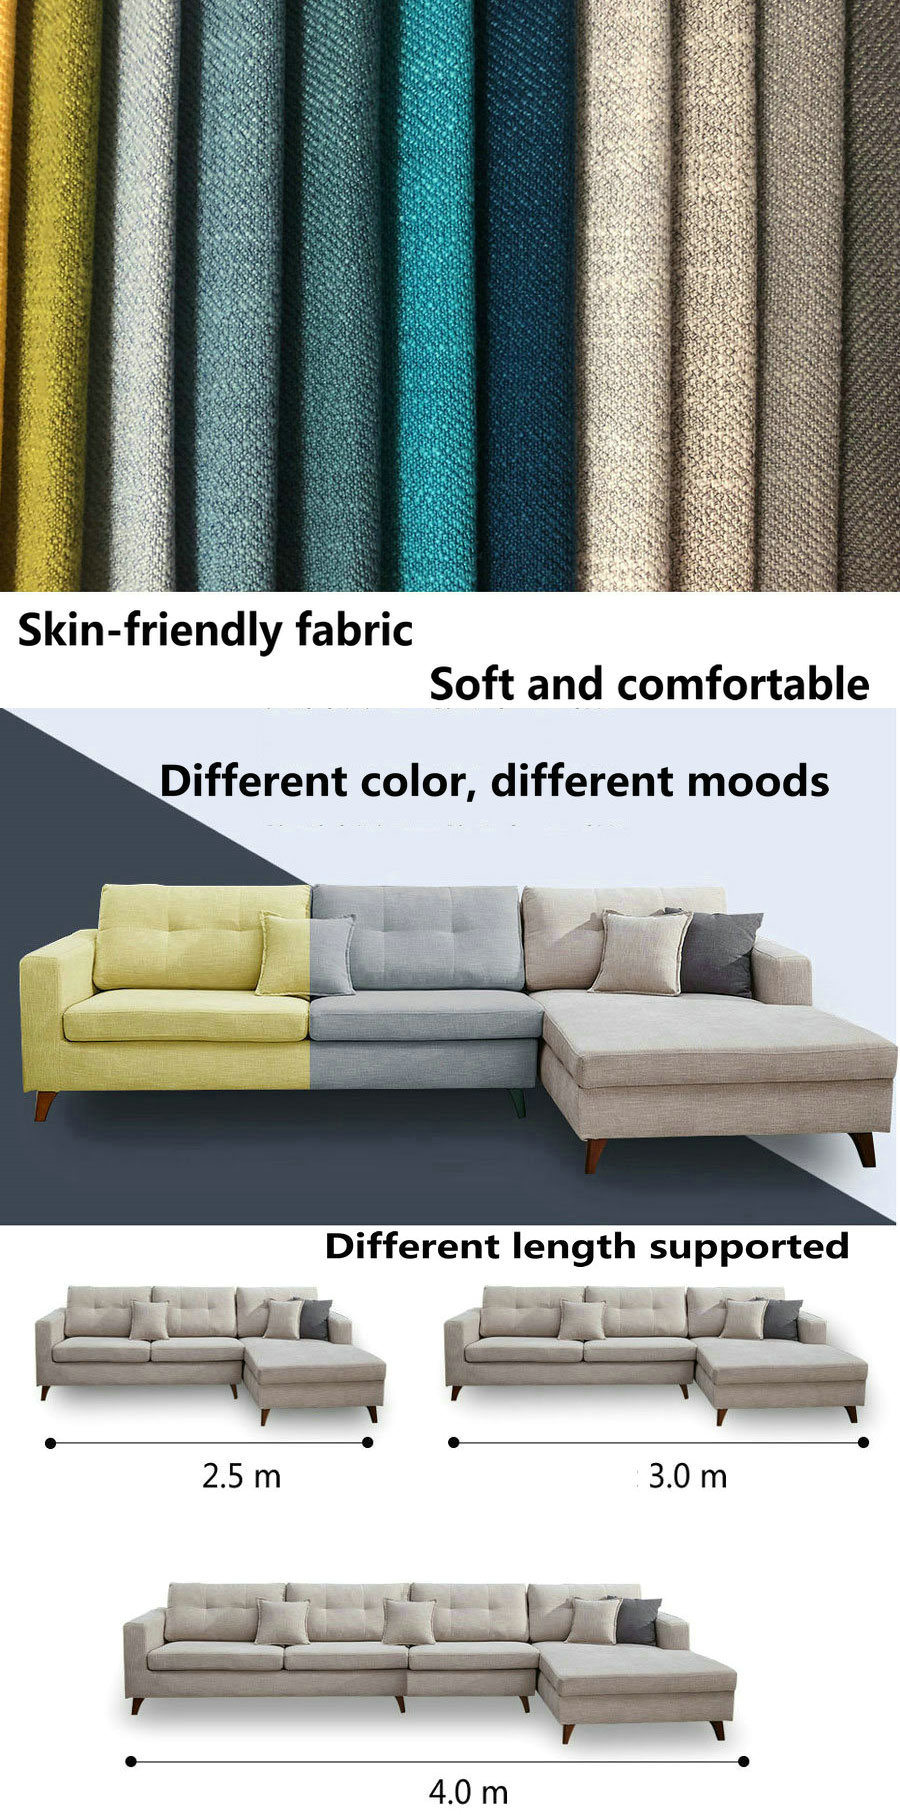 Simple Design L Shape Nordic Style Modern Fabric Lawson Sofa (S21)